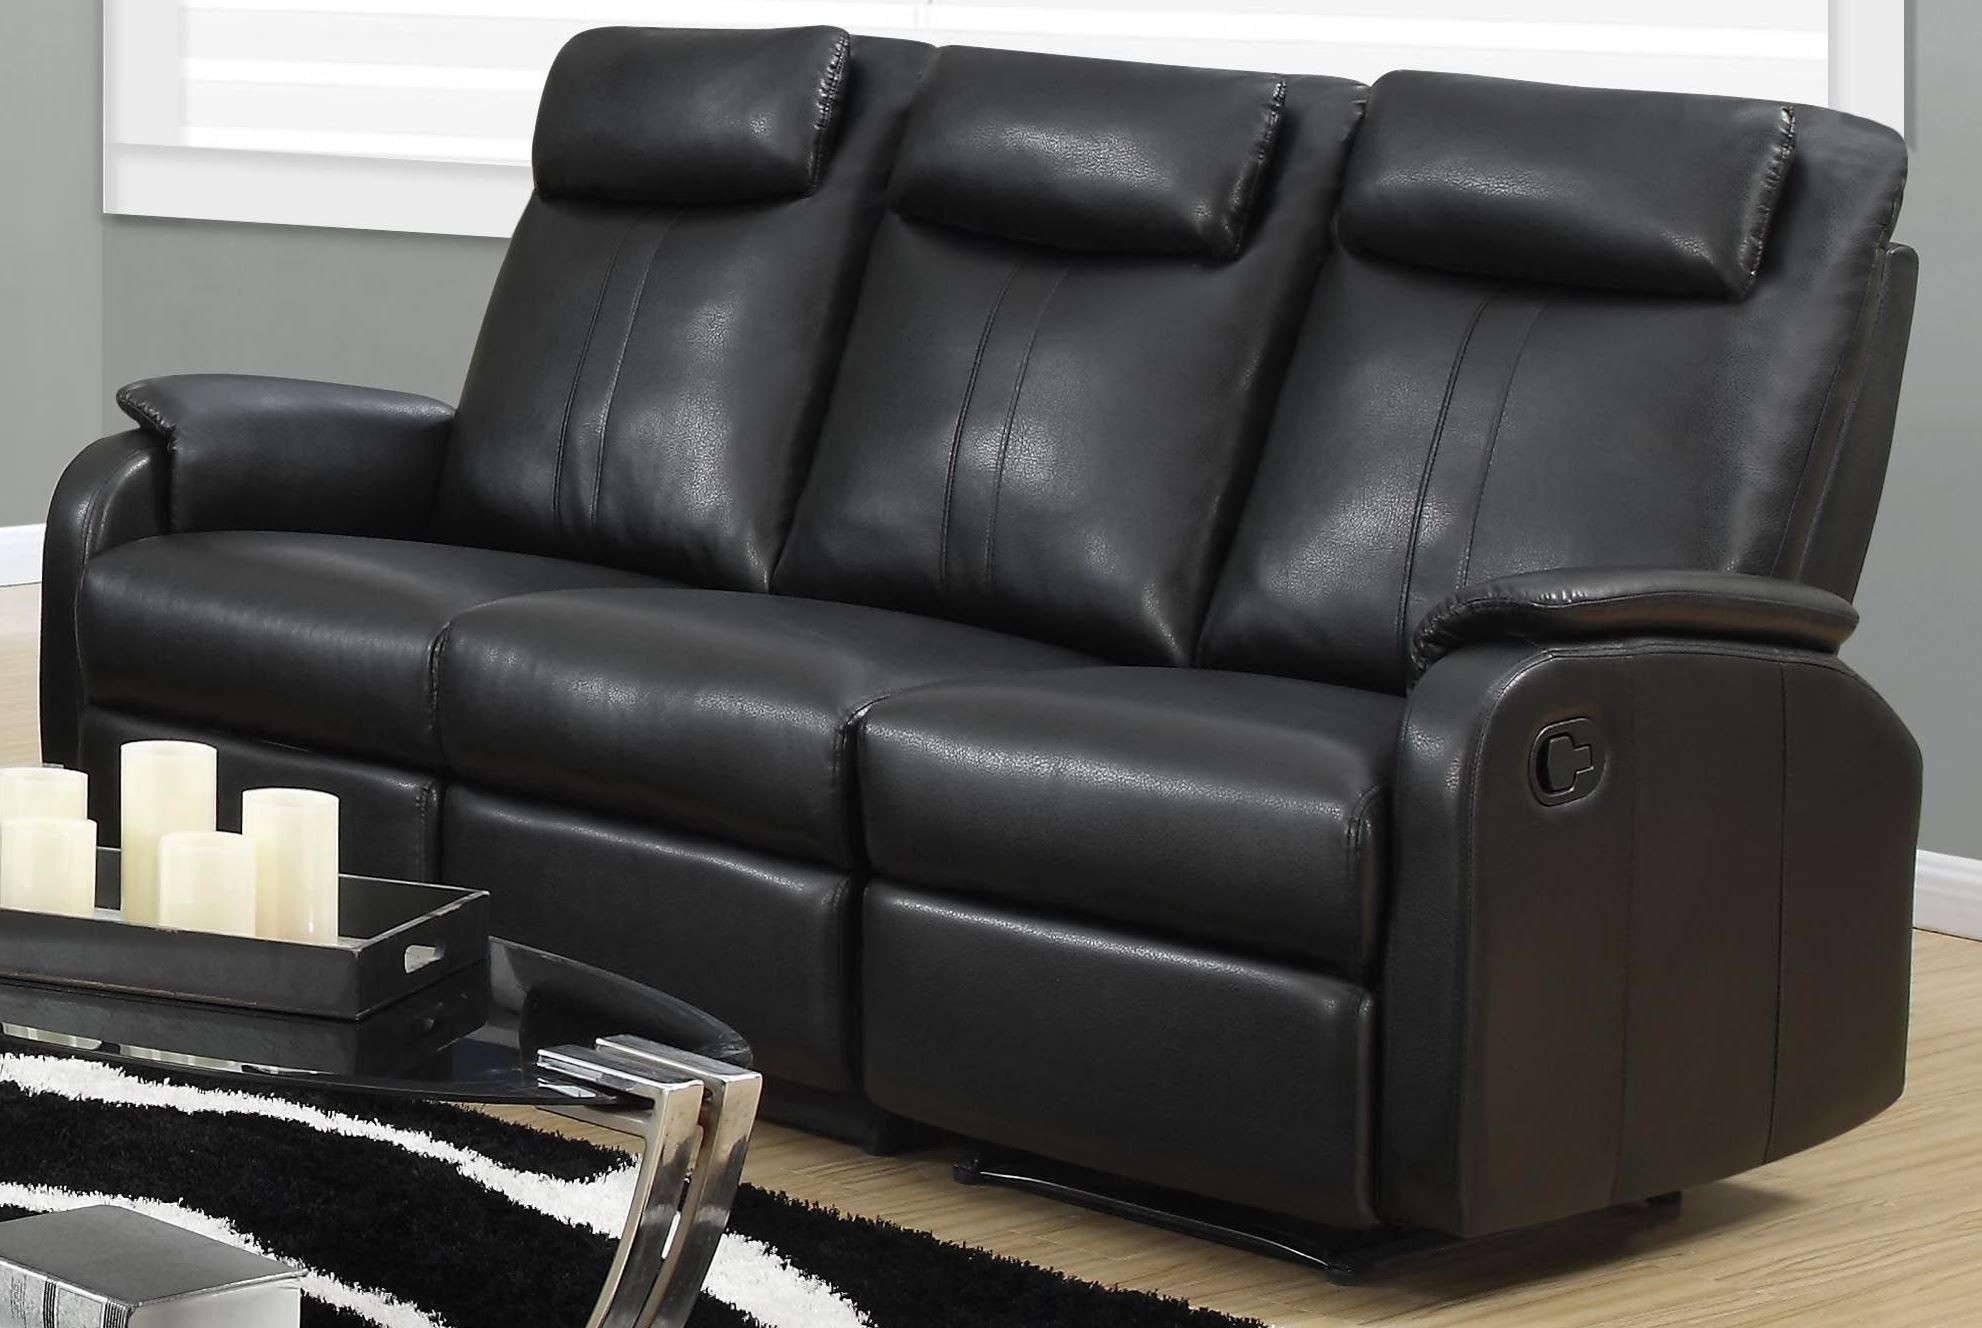 81bk 3 Black Bonded Leather Reclining Sofa From Monarch